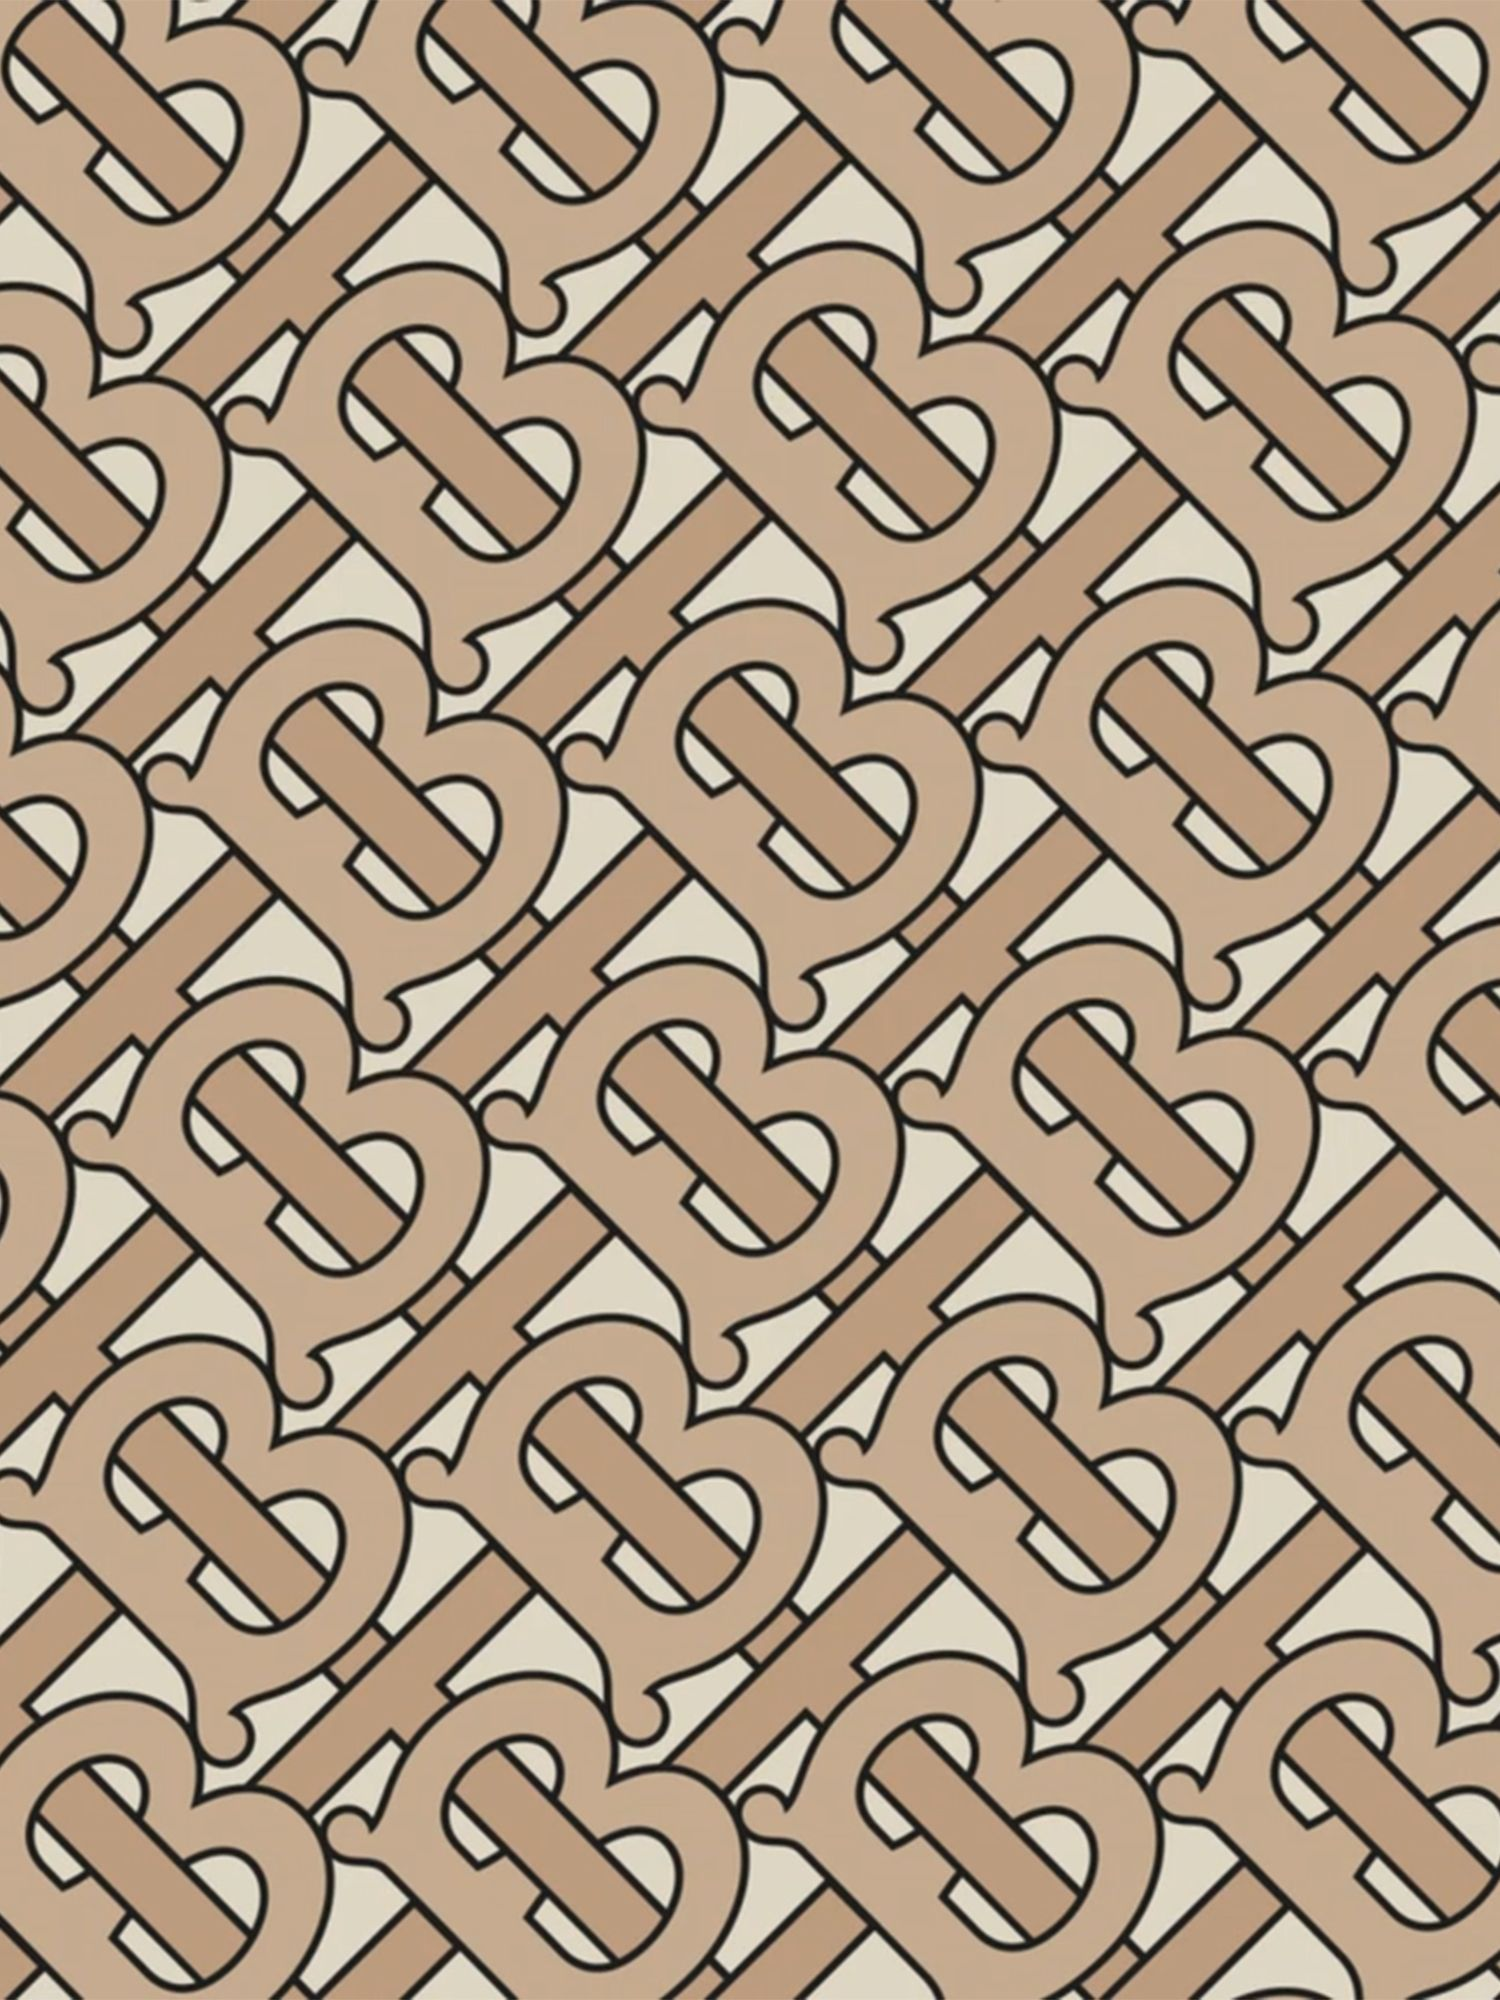 The Thomas Burberry Monogram